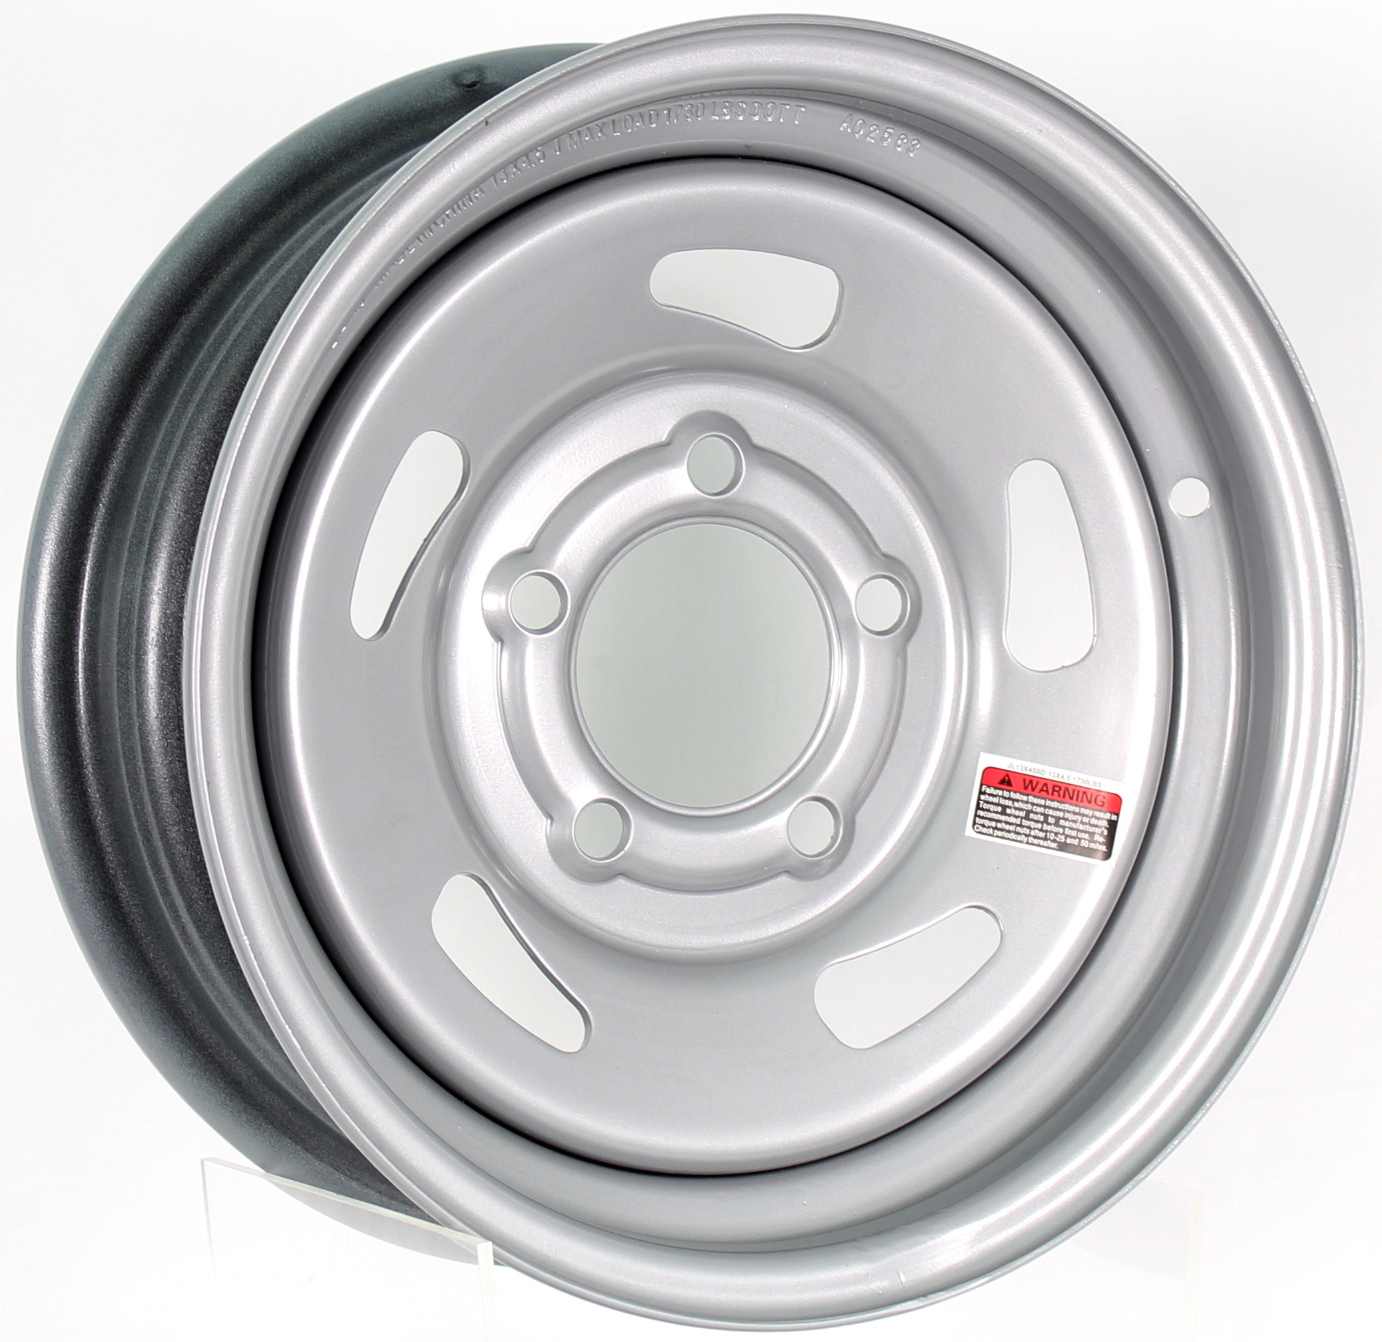 13x4.5 5-4.5 Silver Directional Steel Trailer Wheel Image